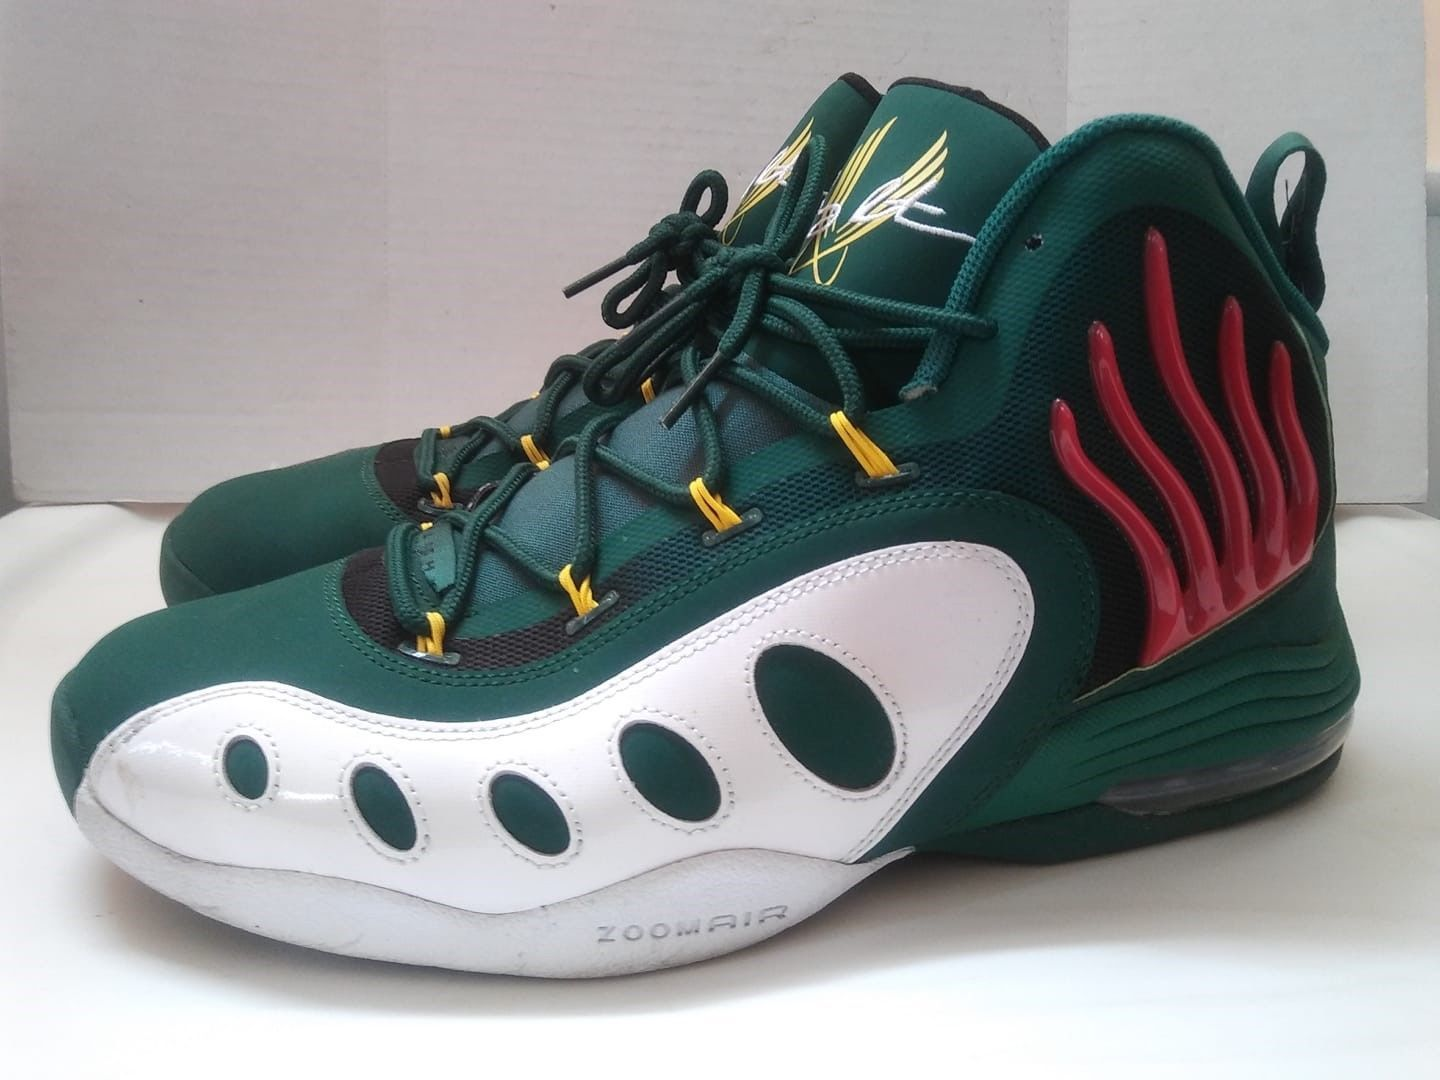 best sneakers 9651d ec32f Nike Air Sonic Flight Gary Payton Flames Green Shoes Zoomair Sz 11.5 Great  Cond